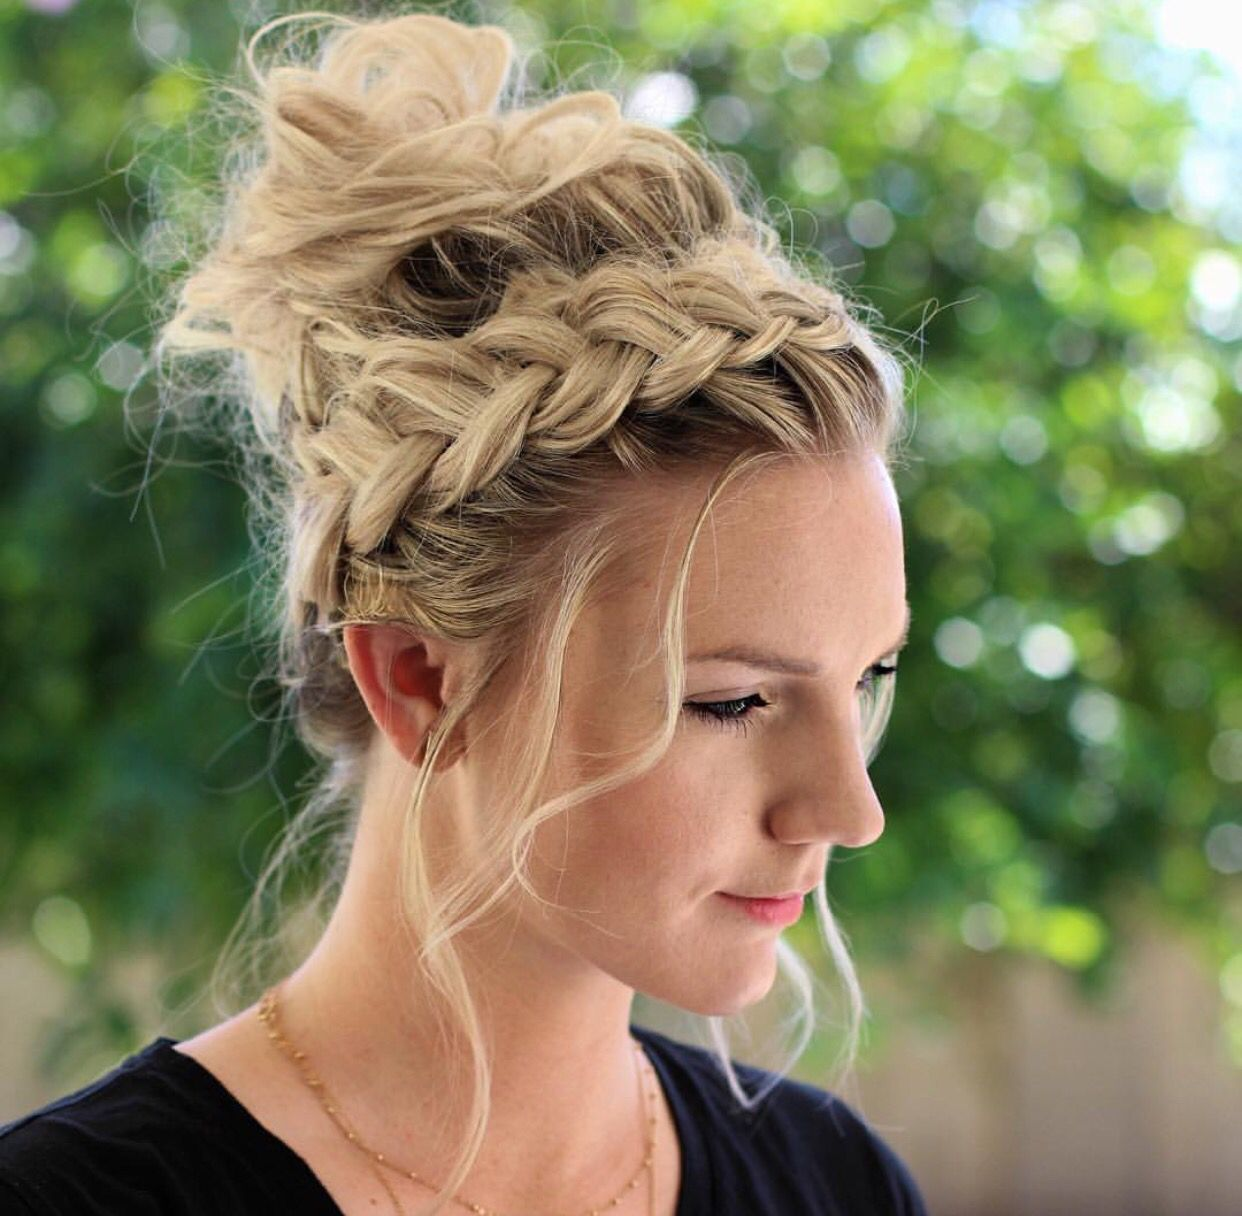 How To Crown Braid Messy Bun With Images Braided Hairstyles